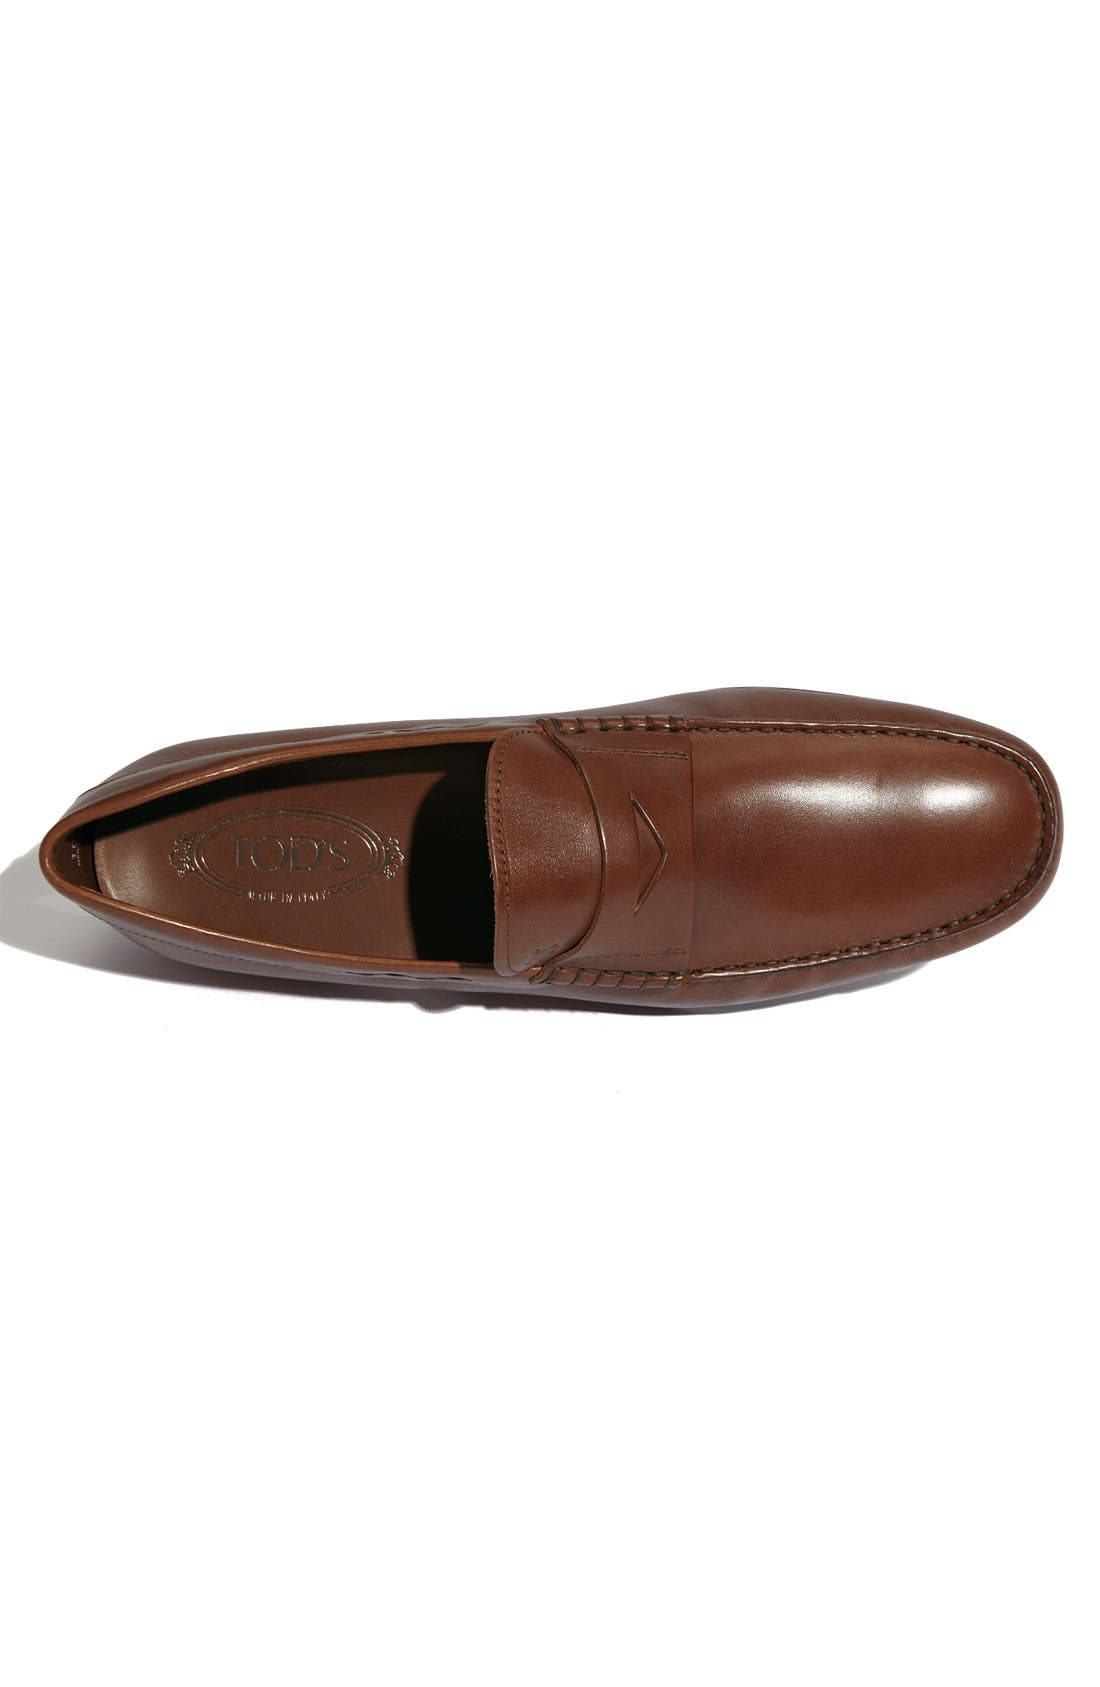 Alternate Image 3  - Tod's 'Brooklyn' Penny Loafer